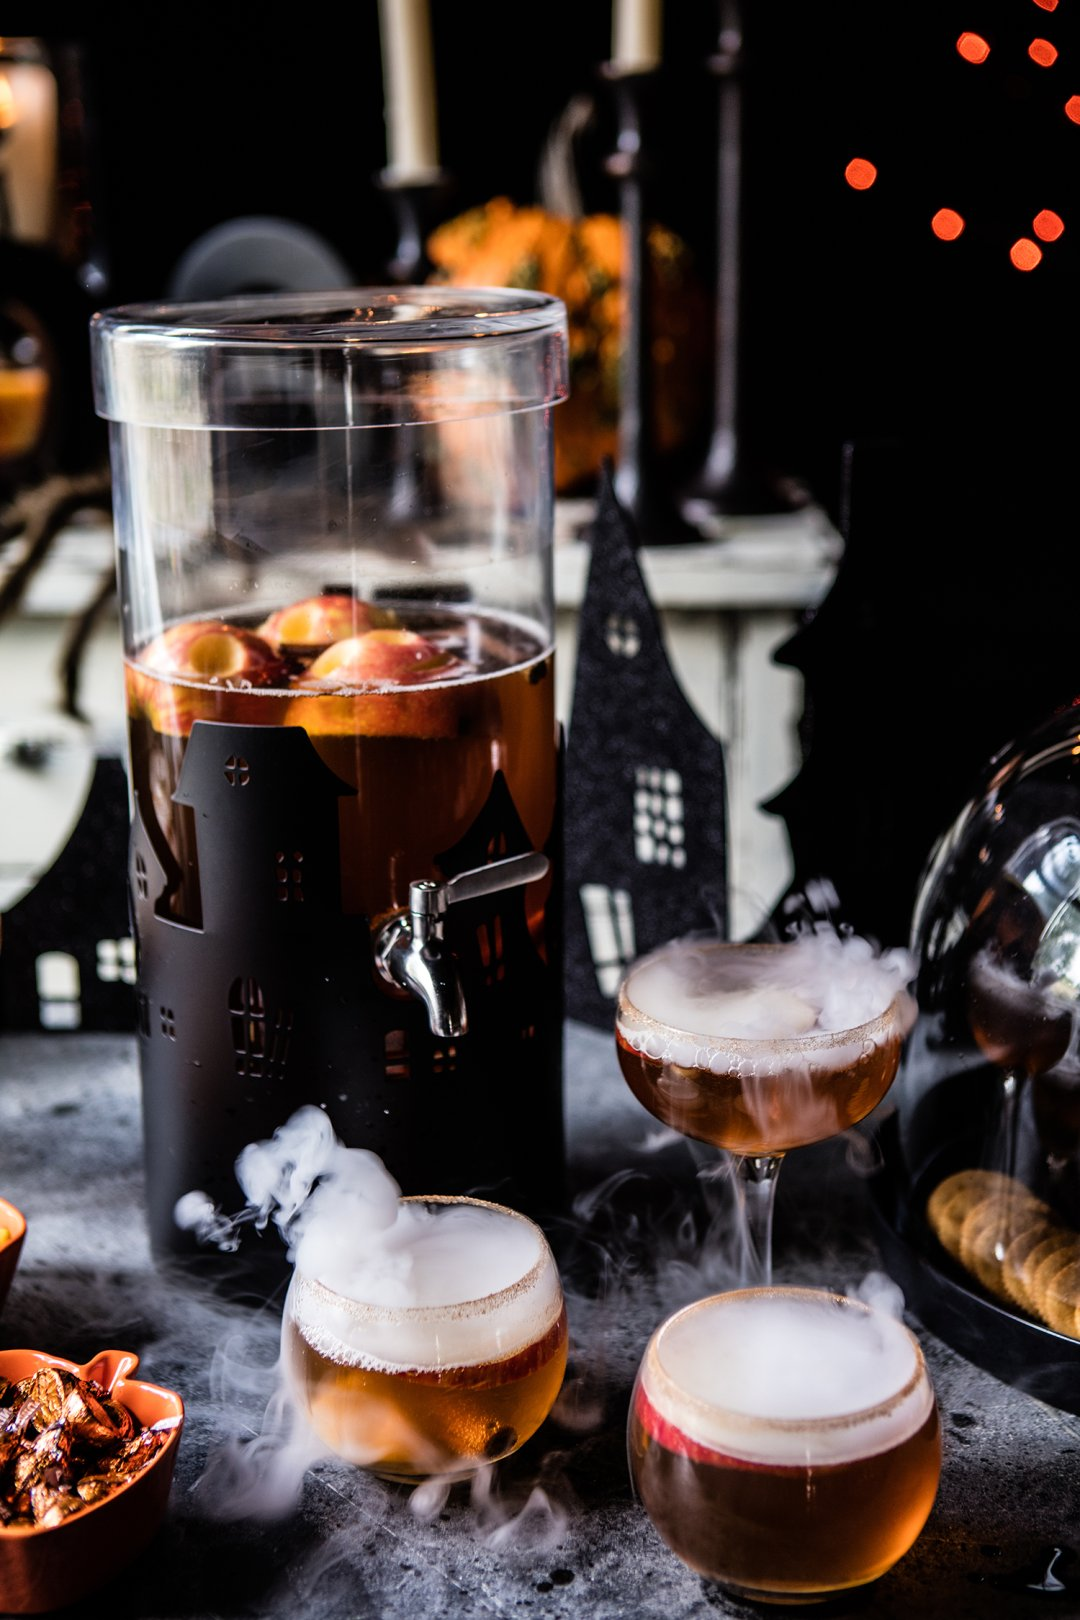 Halloween-themed drink dispenser filled with apple punch, surrounded by smoking cocktail glasses